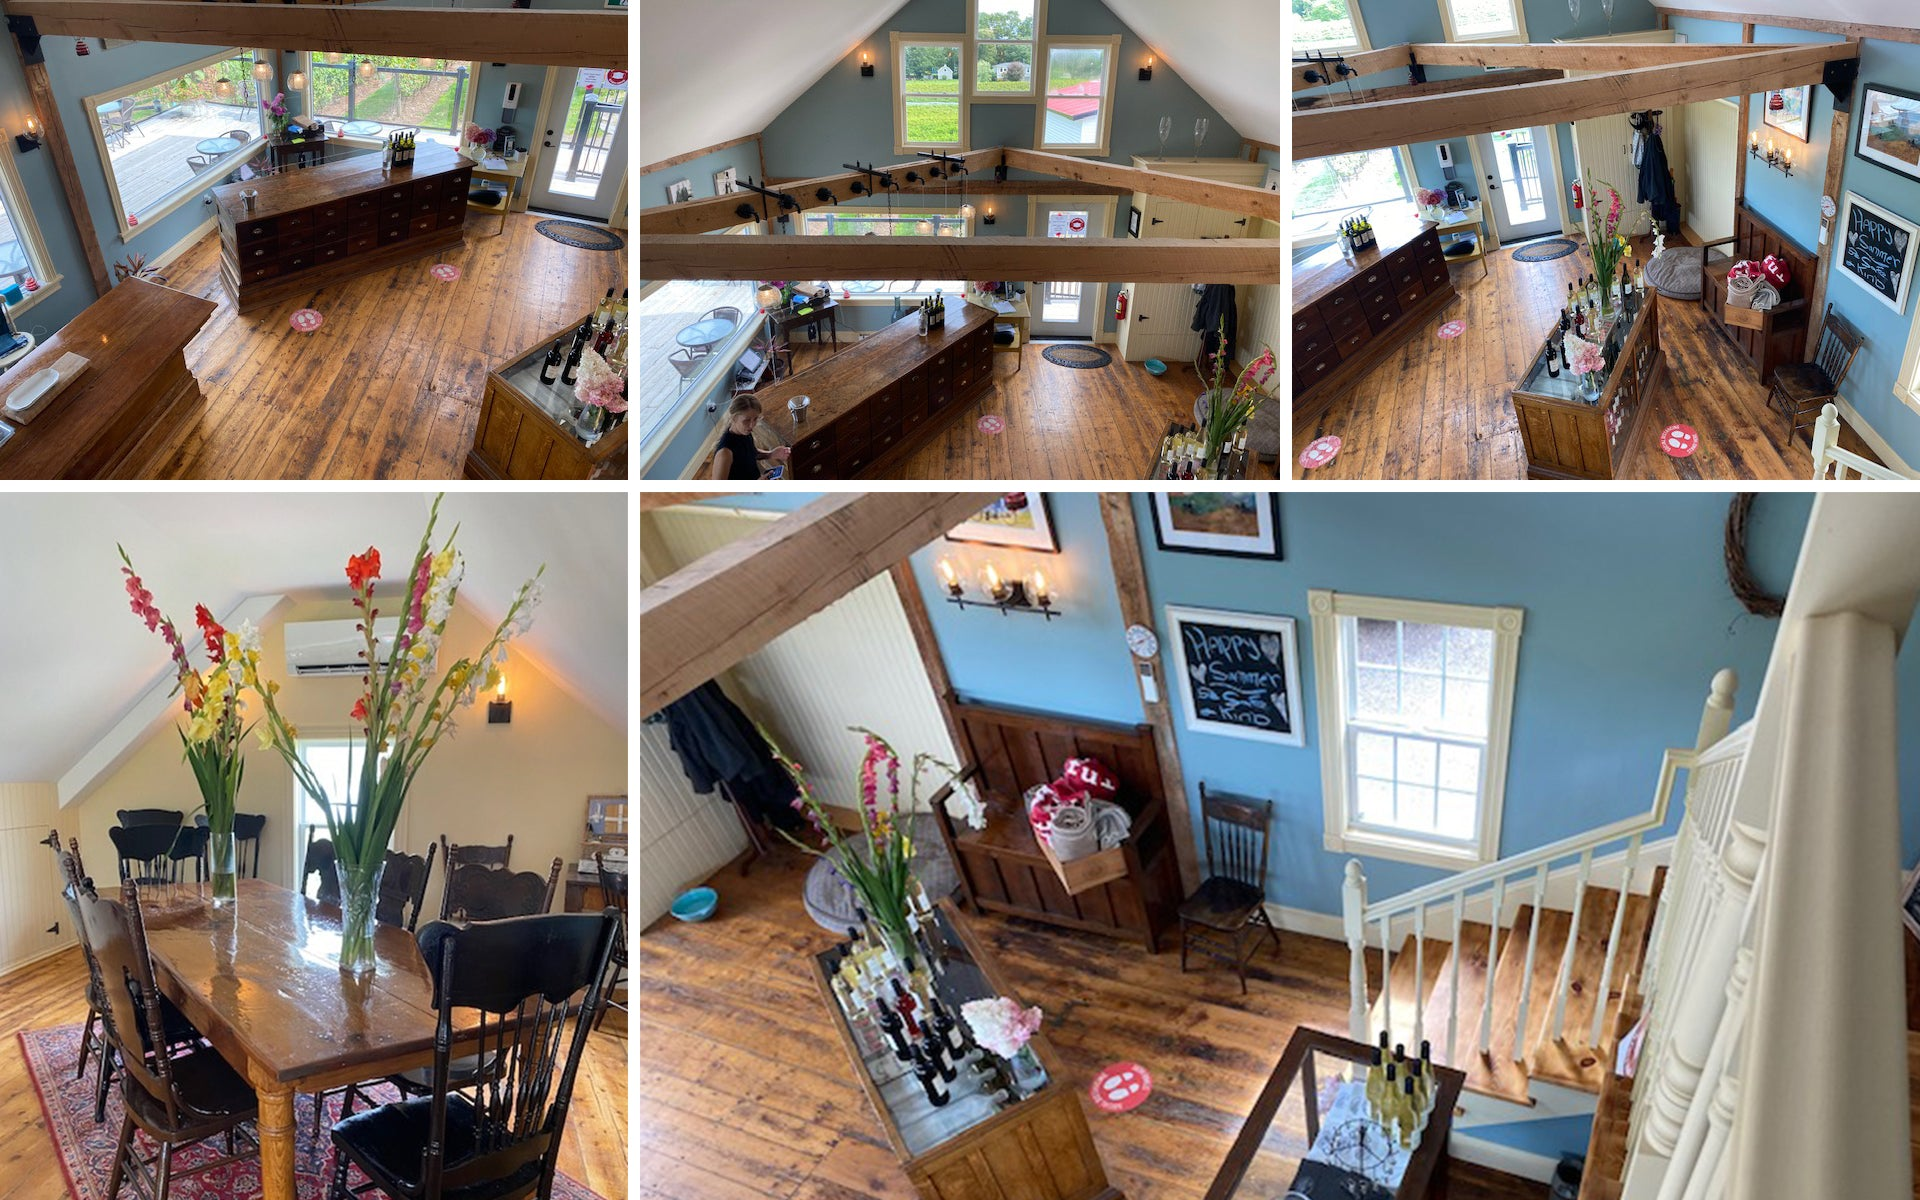 Different shots of Tasting room at 1365 Church Street Vineyard & Winery